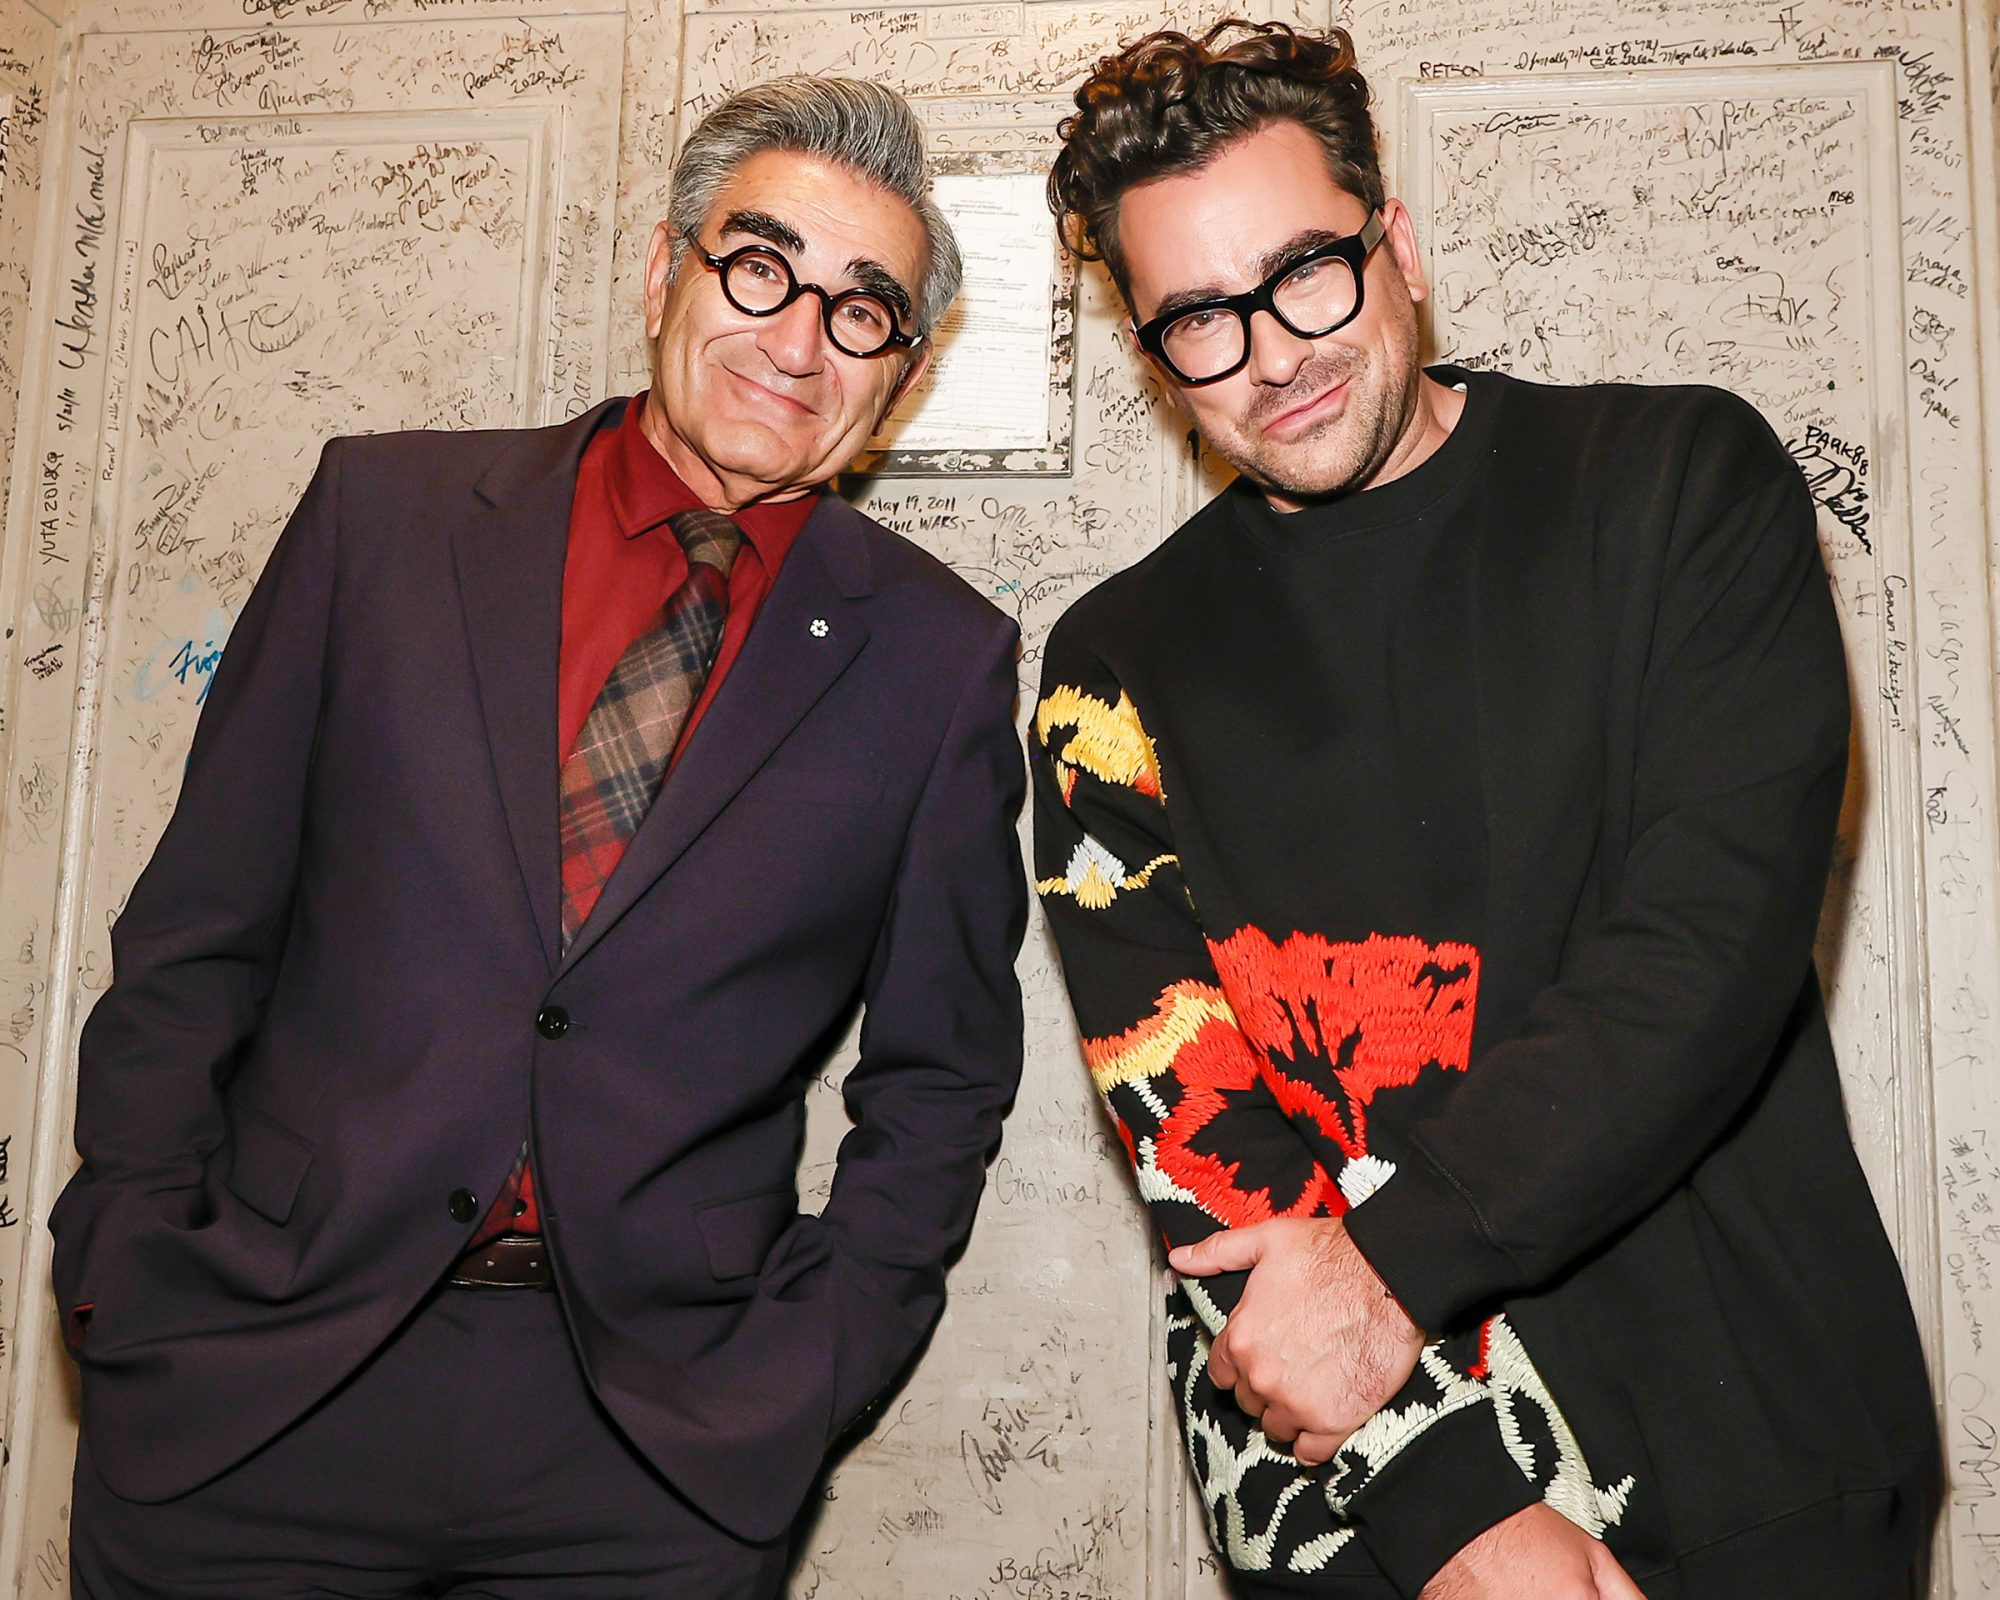 """Eugene Levy and Dan Levy are seen during the """"Best Wishes, Warmest Regards"""" book launch at The Beacon Theatre on October 25, 2021 in New York City"""